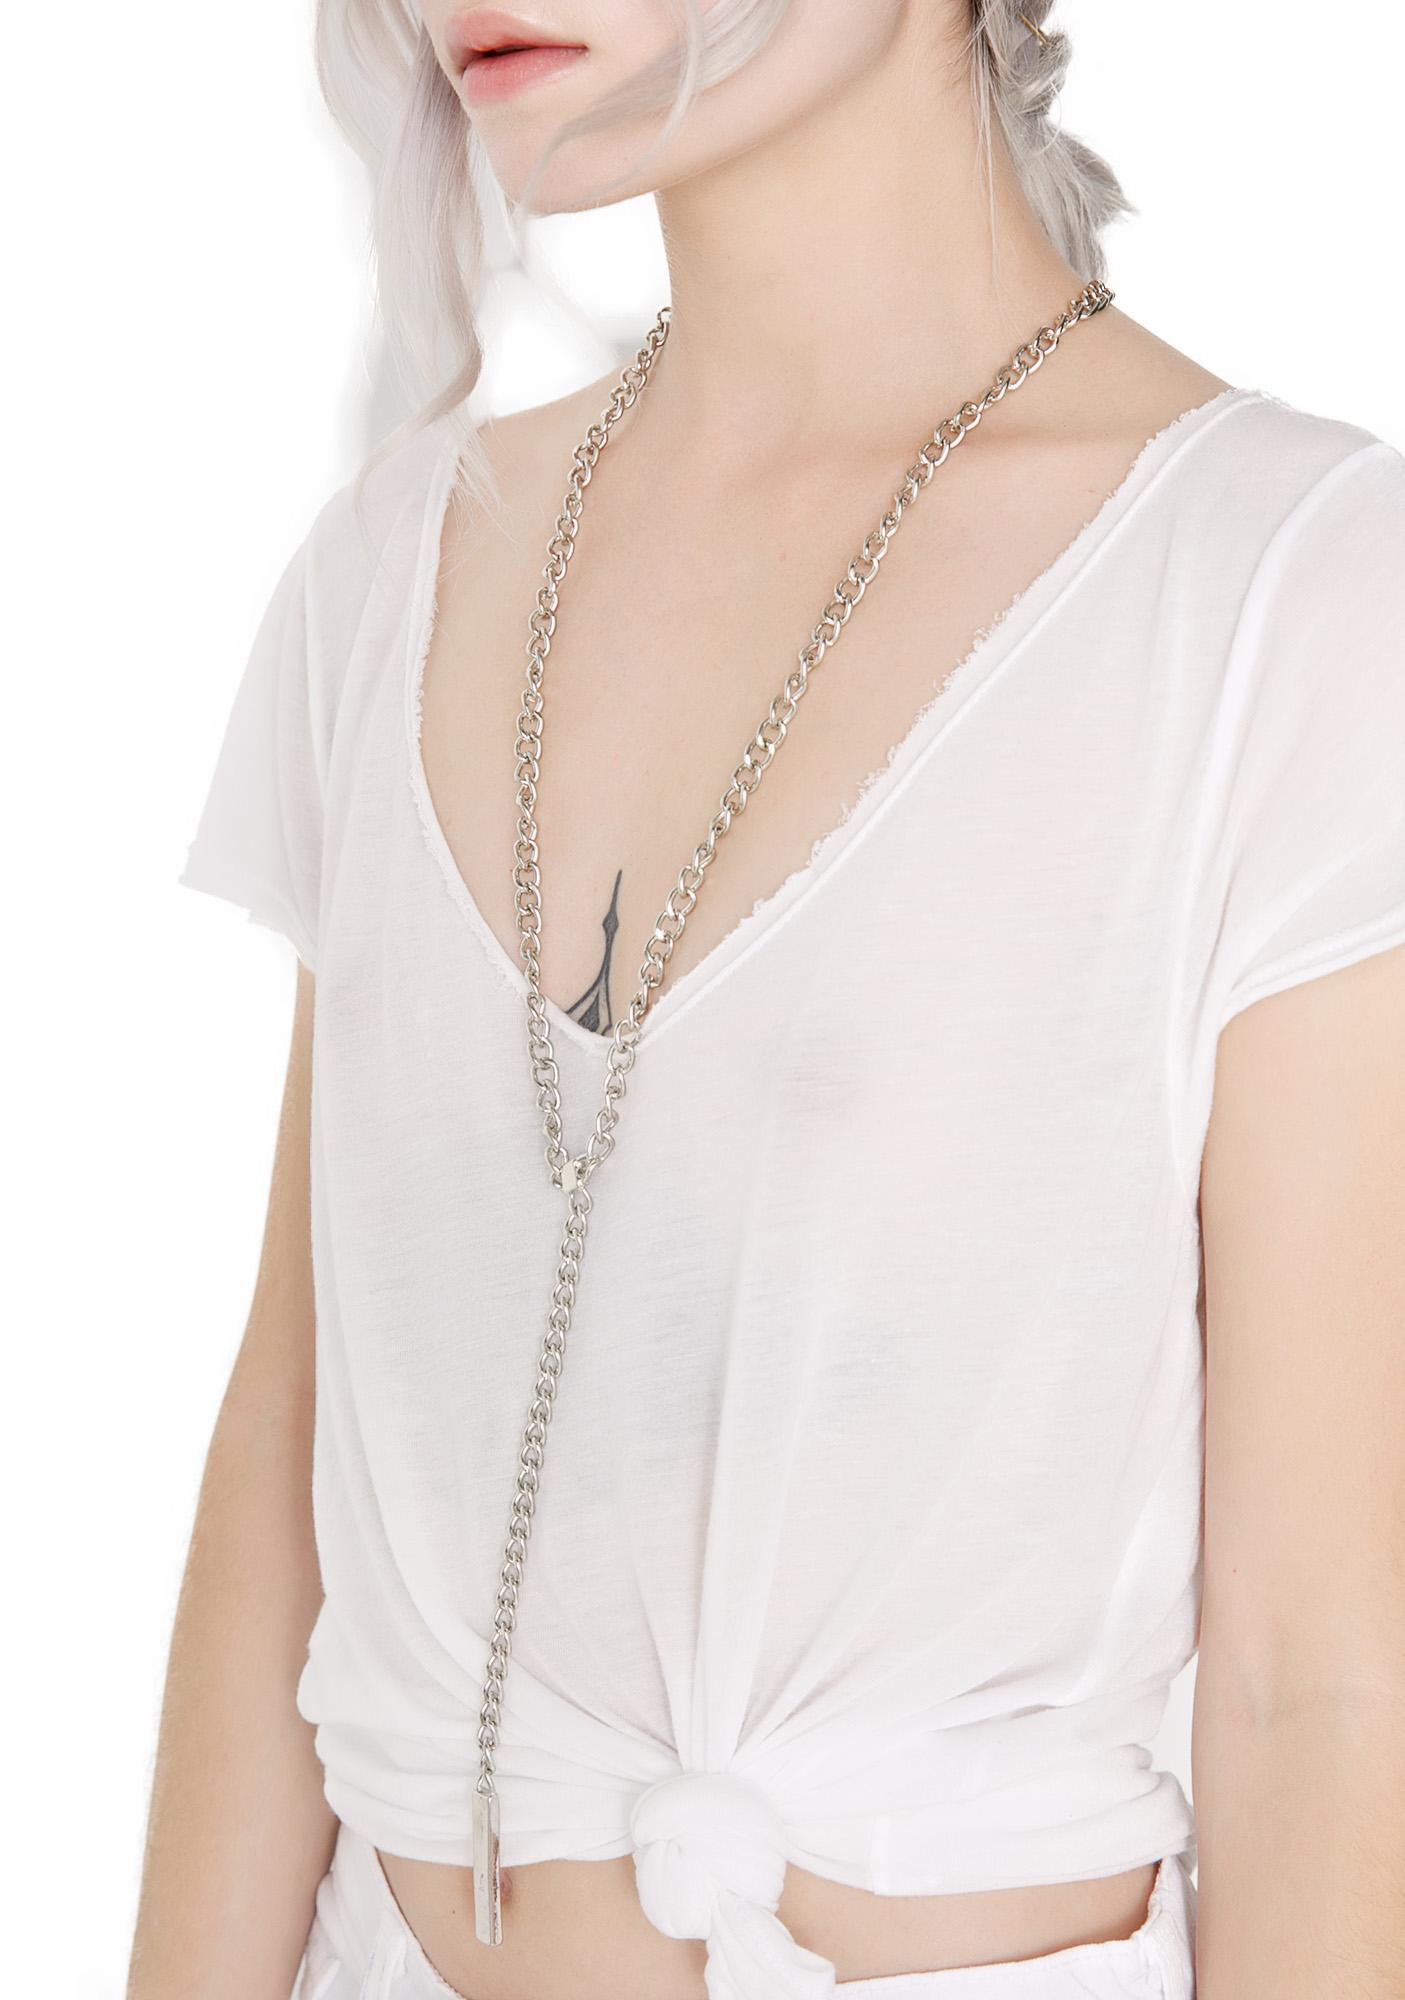 Colonnade Lariat Necklace